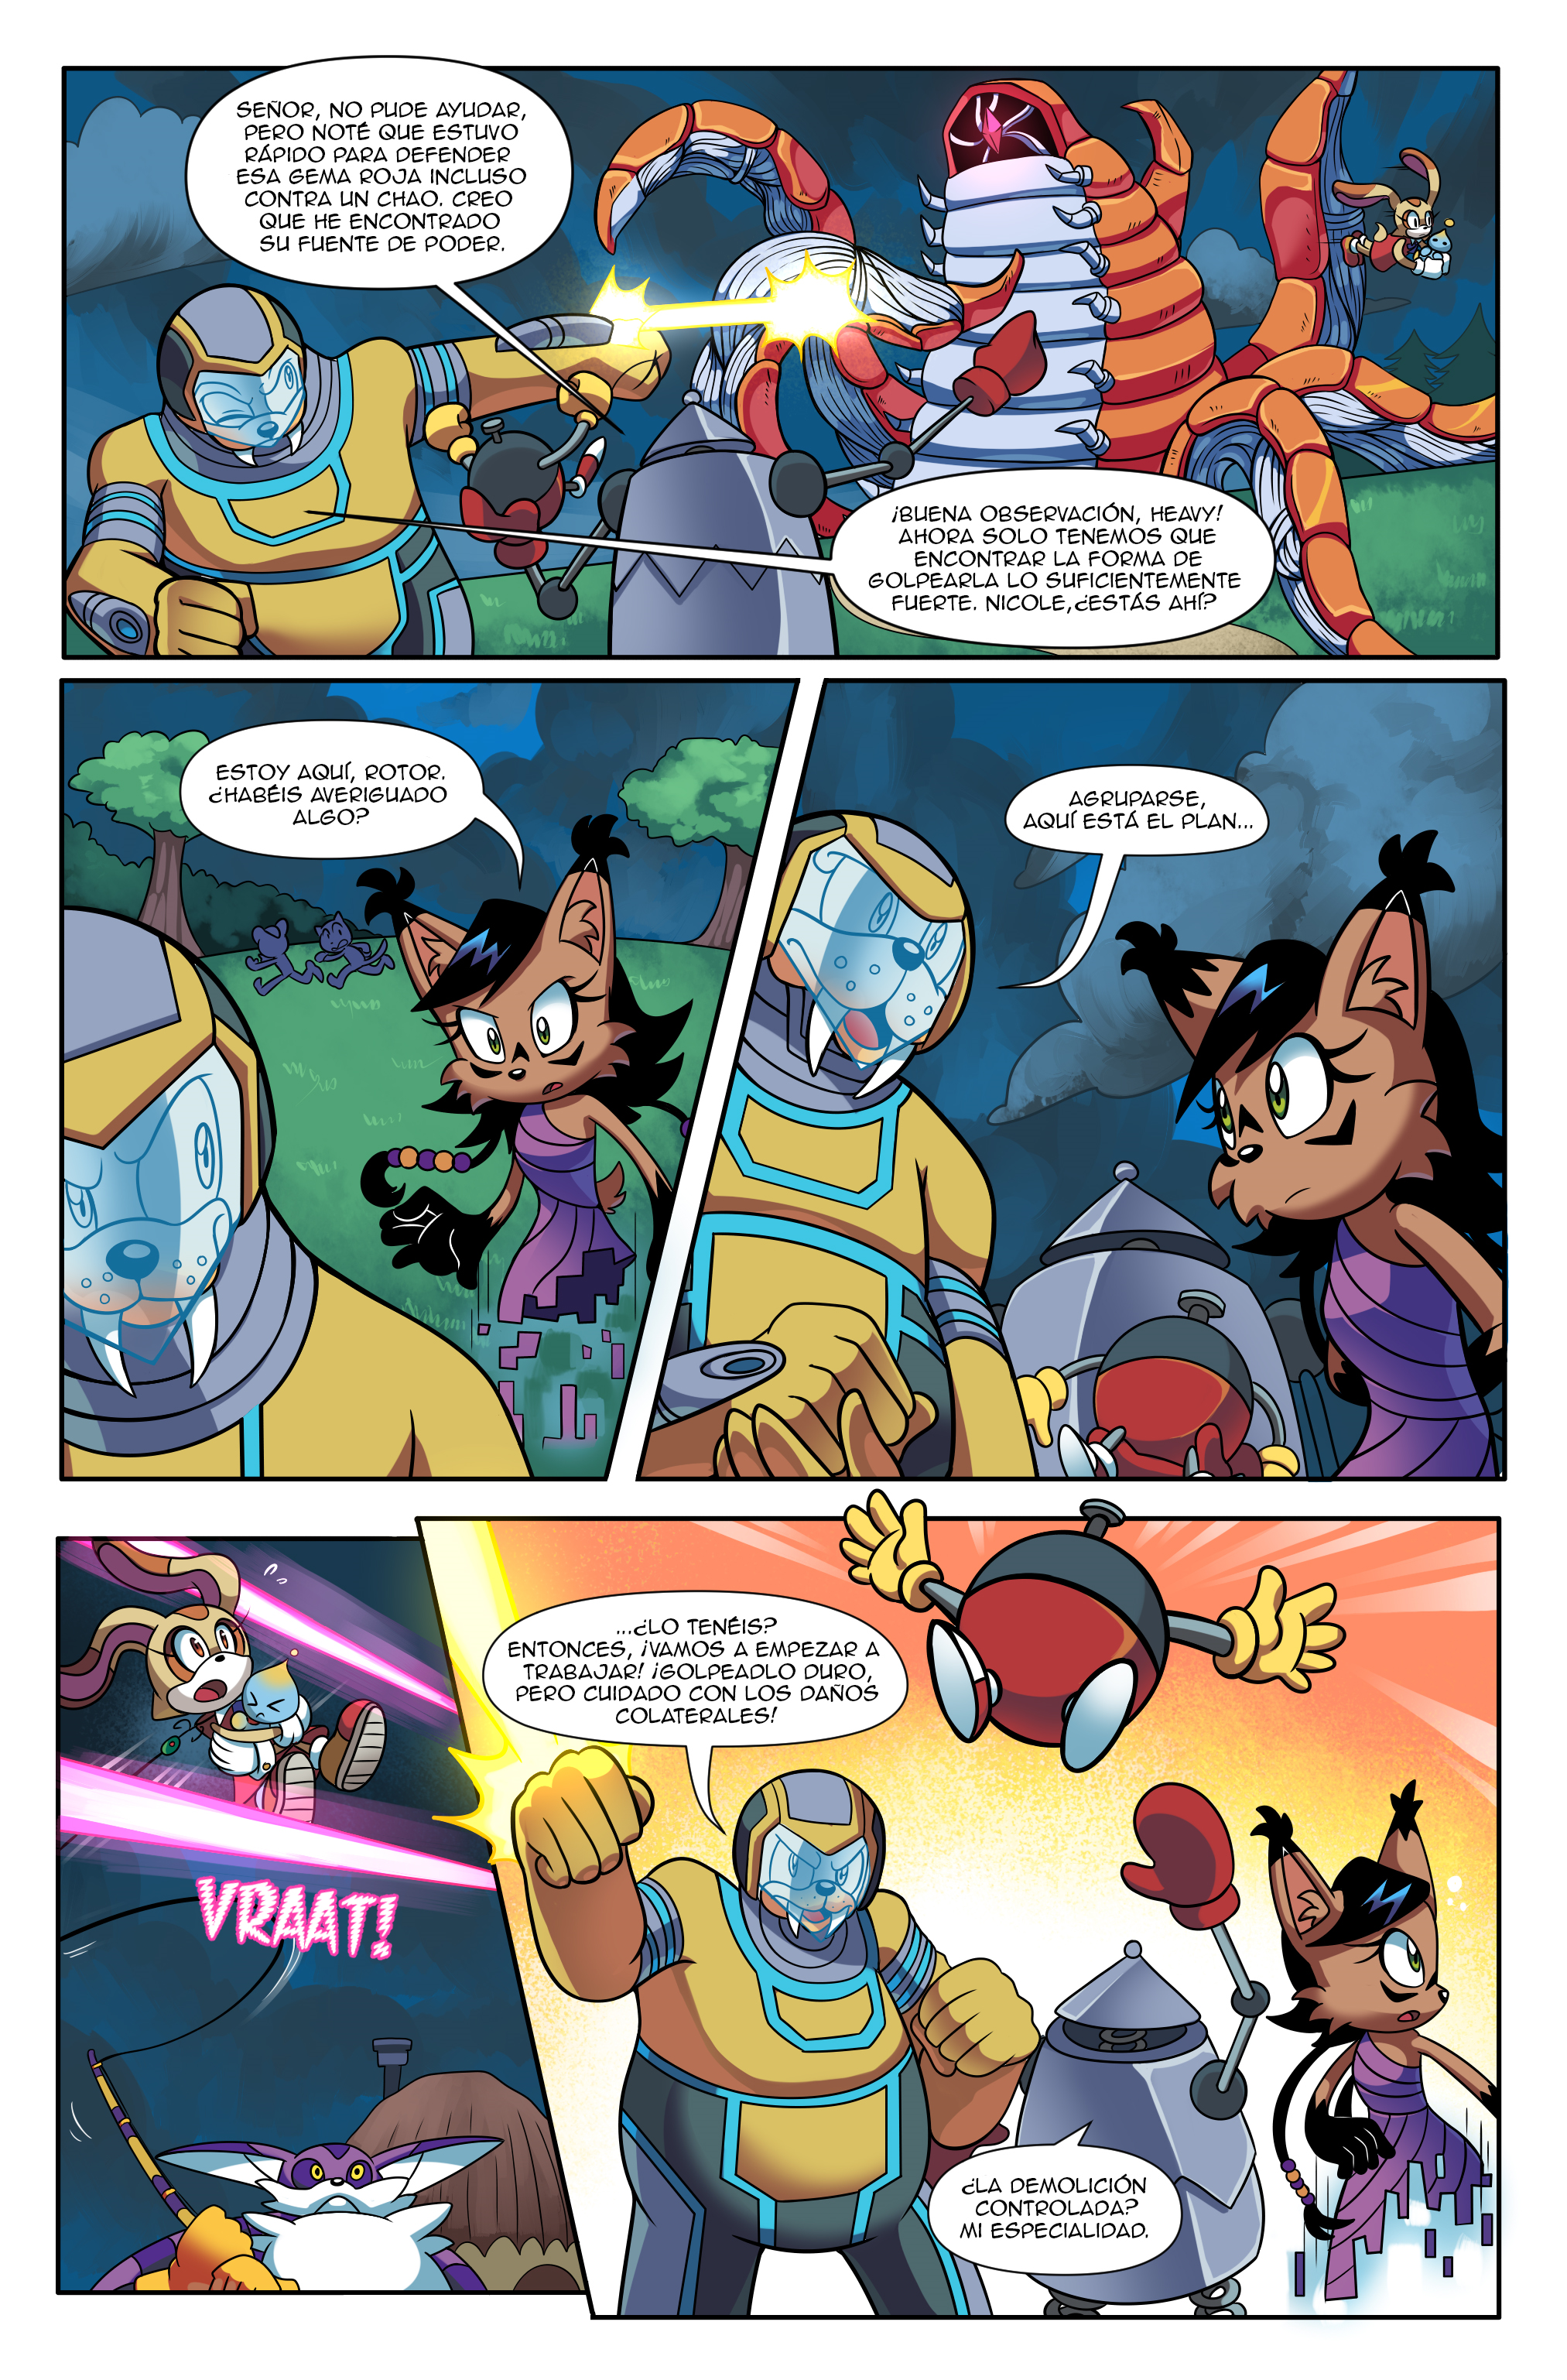 """Sonic the Hedgehog Online #248 – """"At All Costs, Part 2"""" – Page 7 – Spanish"""